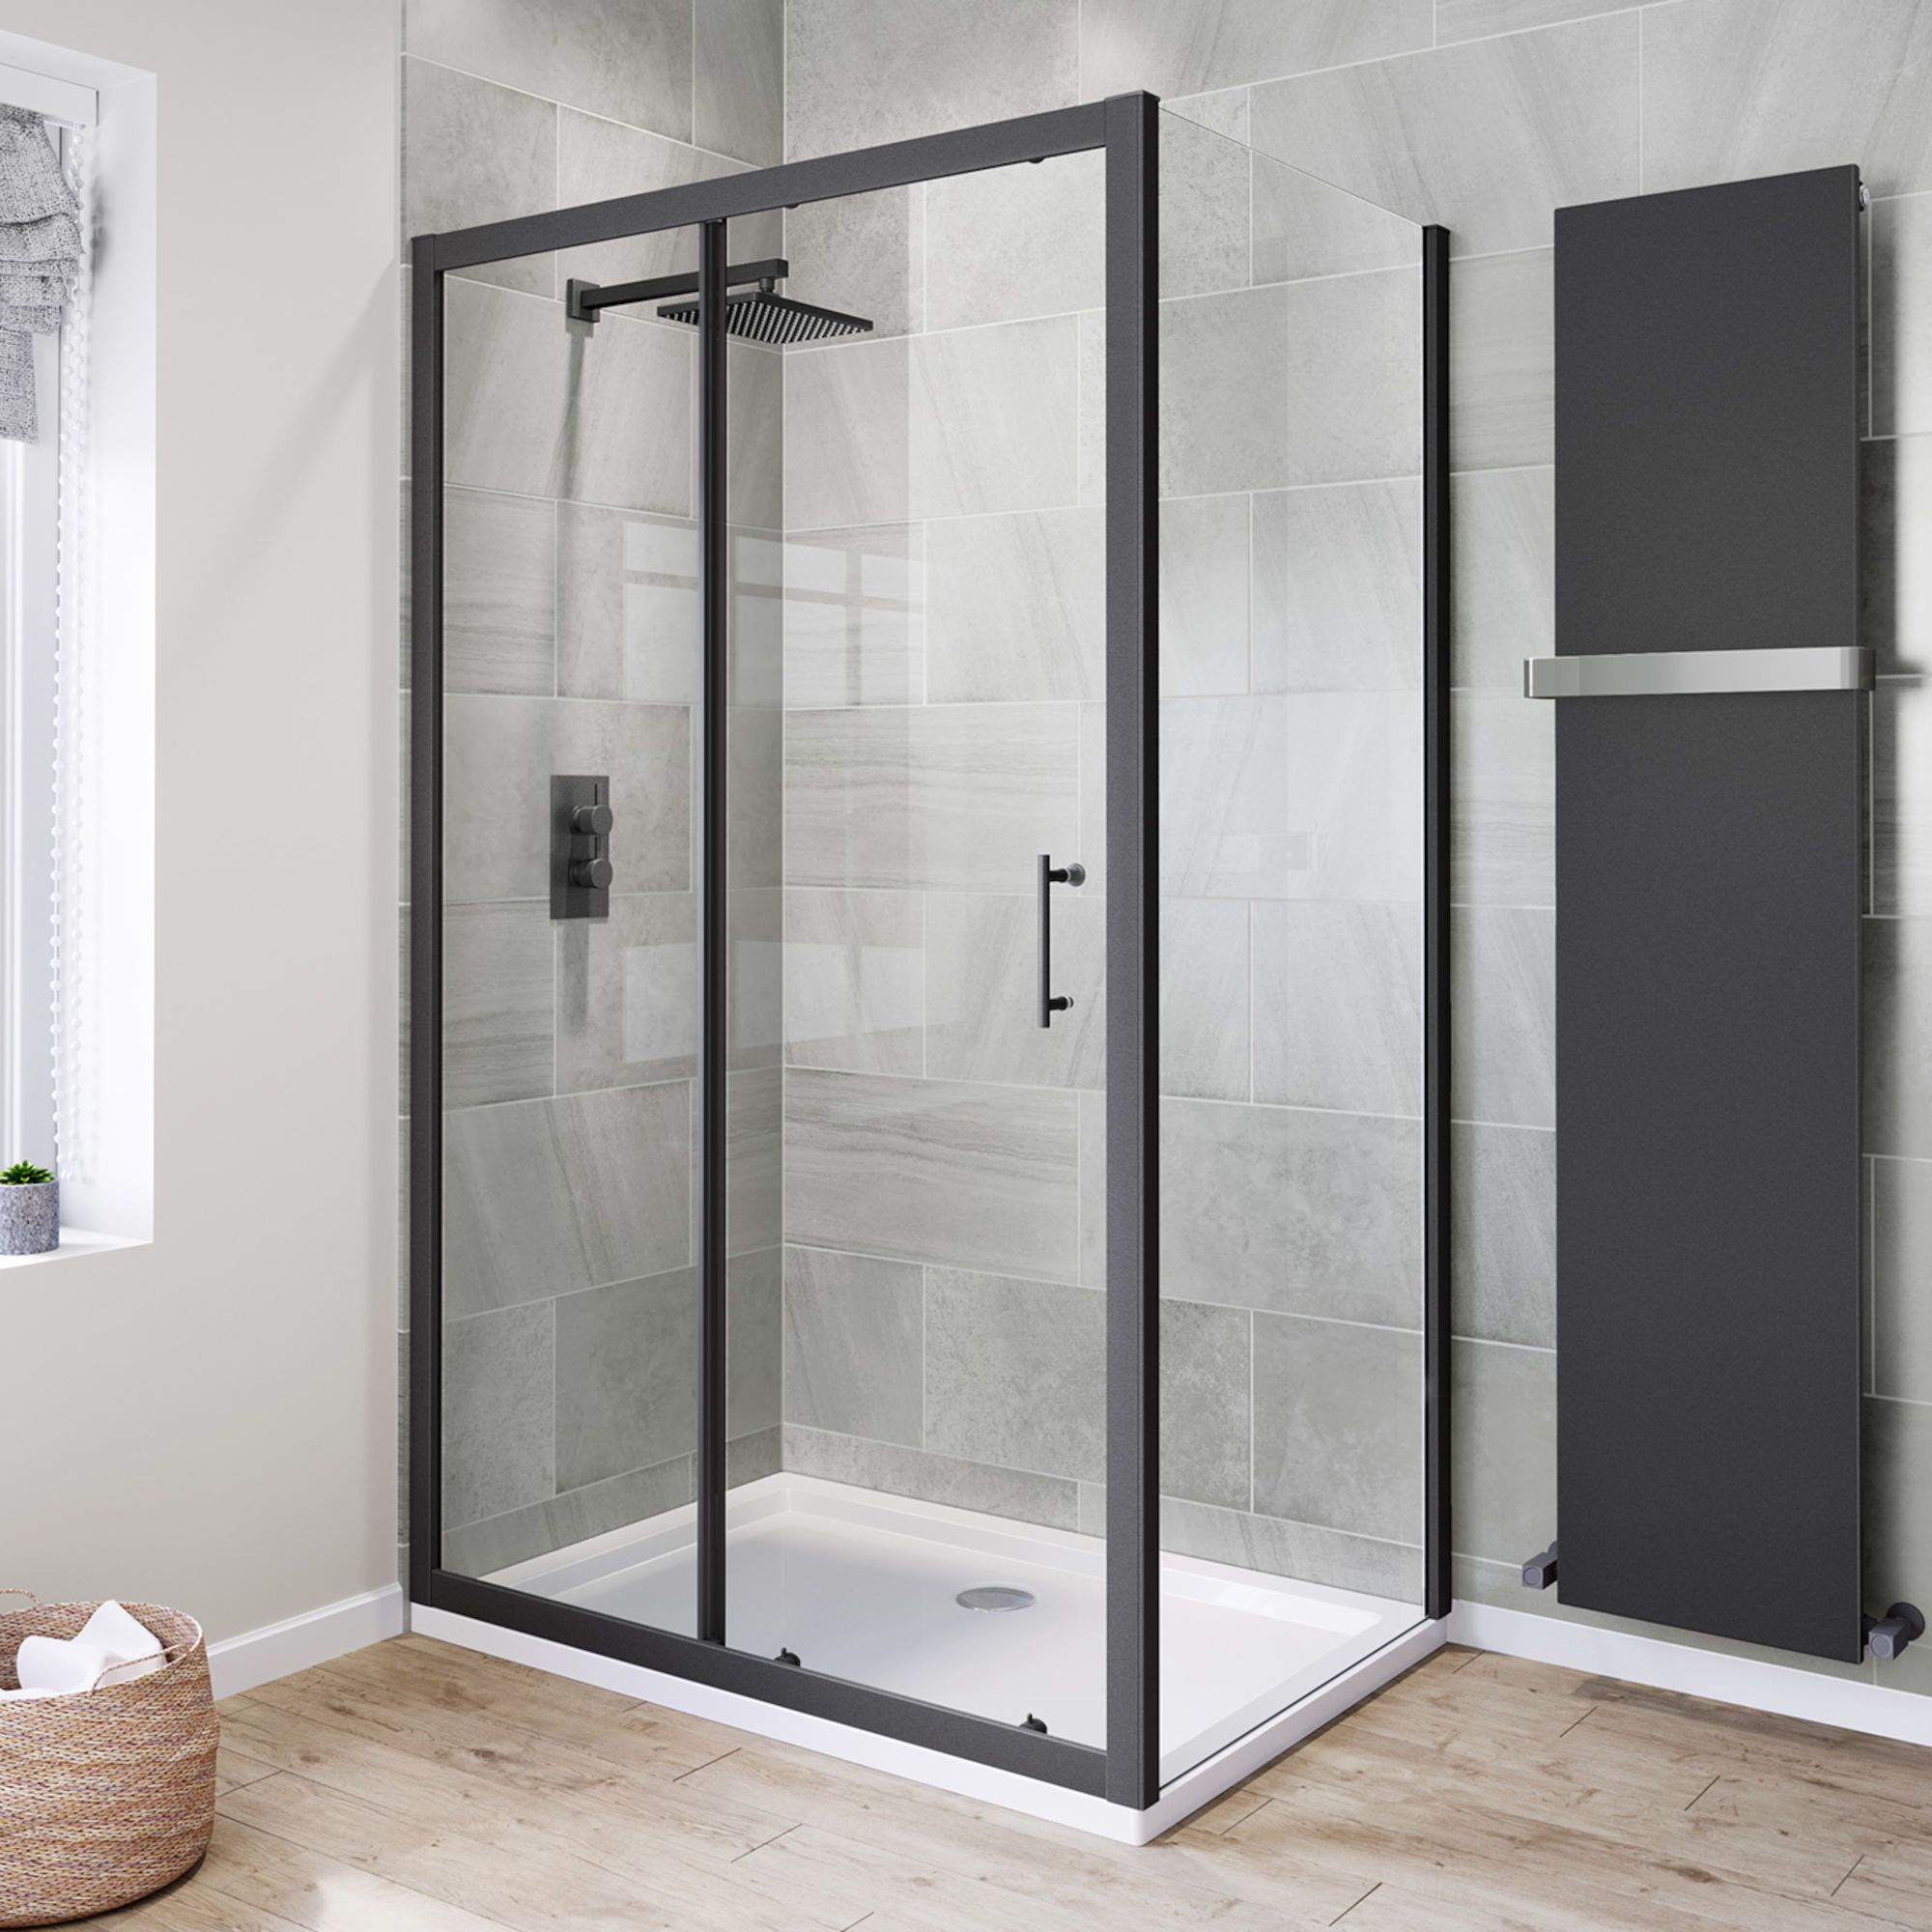 1200x800mm 6mm Black Frame Sliding Shower Enclosure With Silicone Sealant Shower Doors Framed Shower Enclosures Frameless Shower Doors